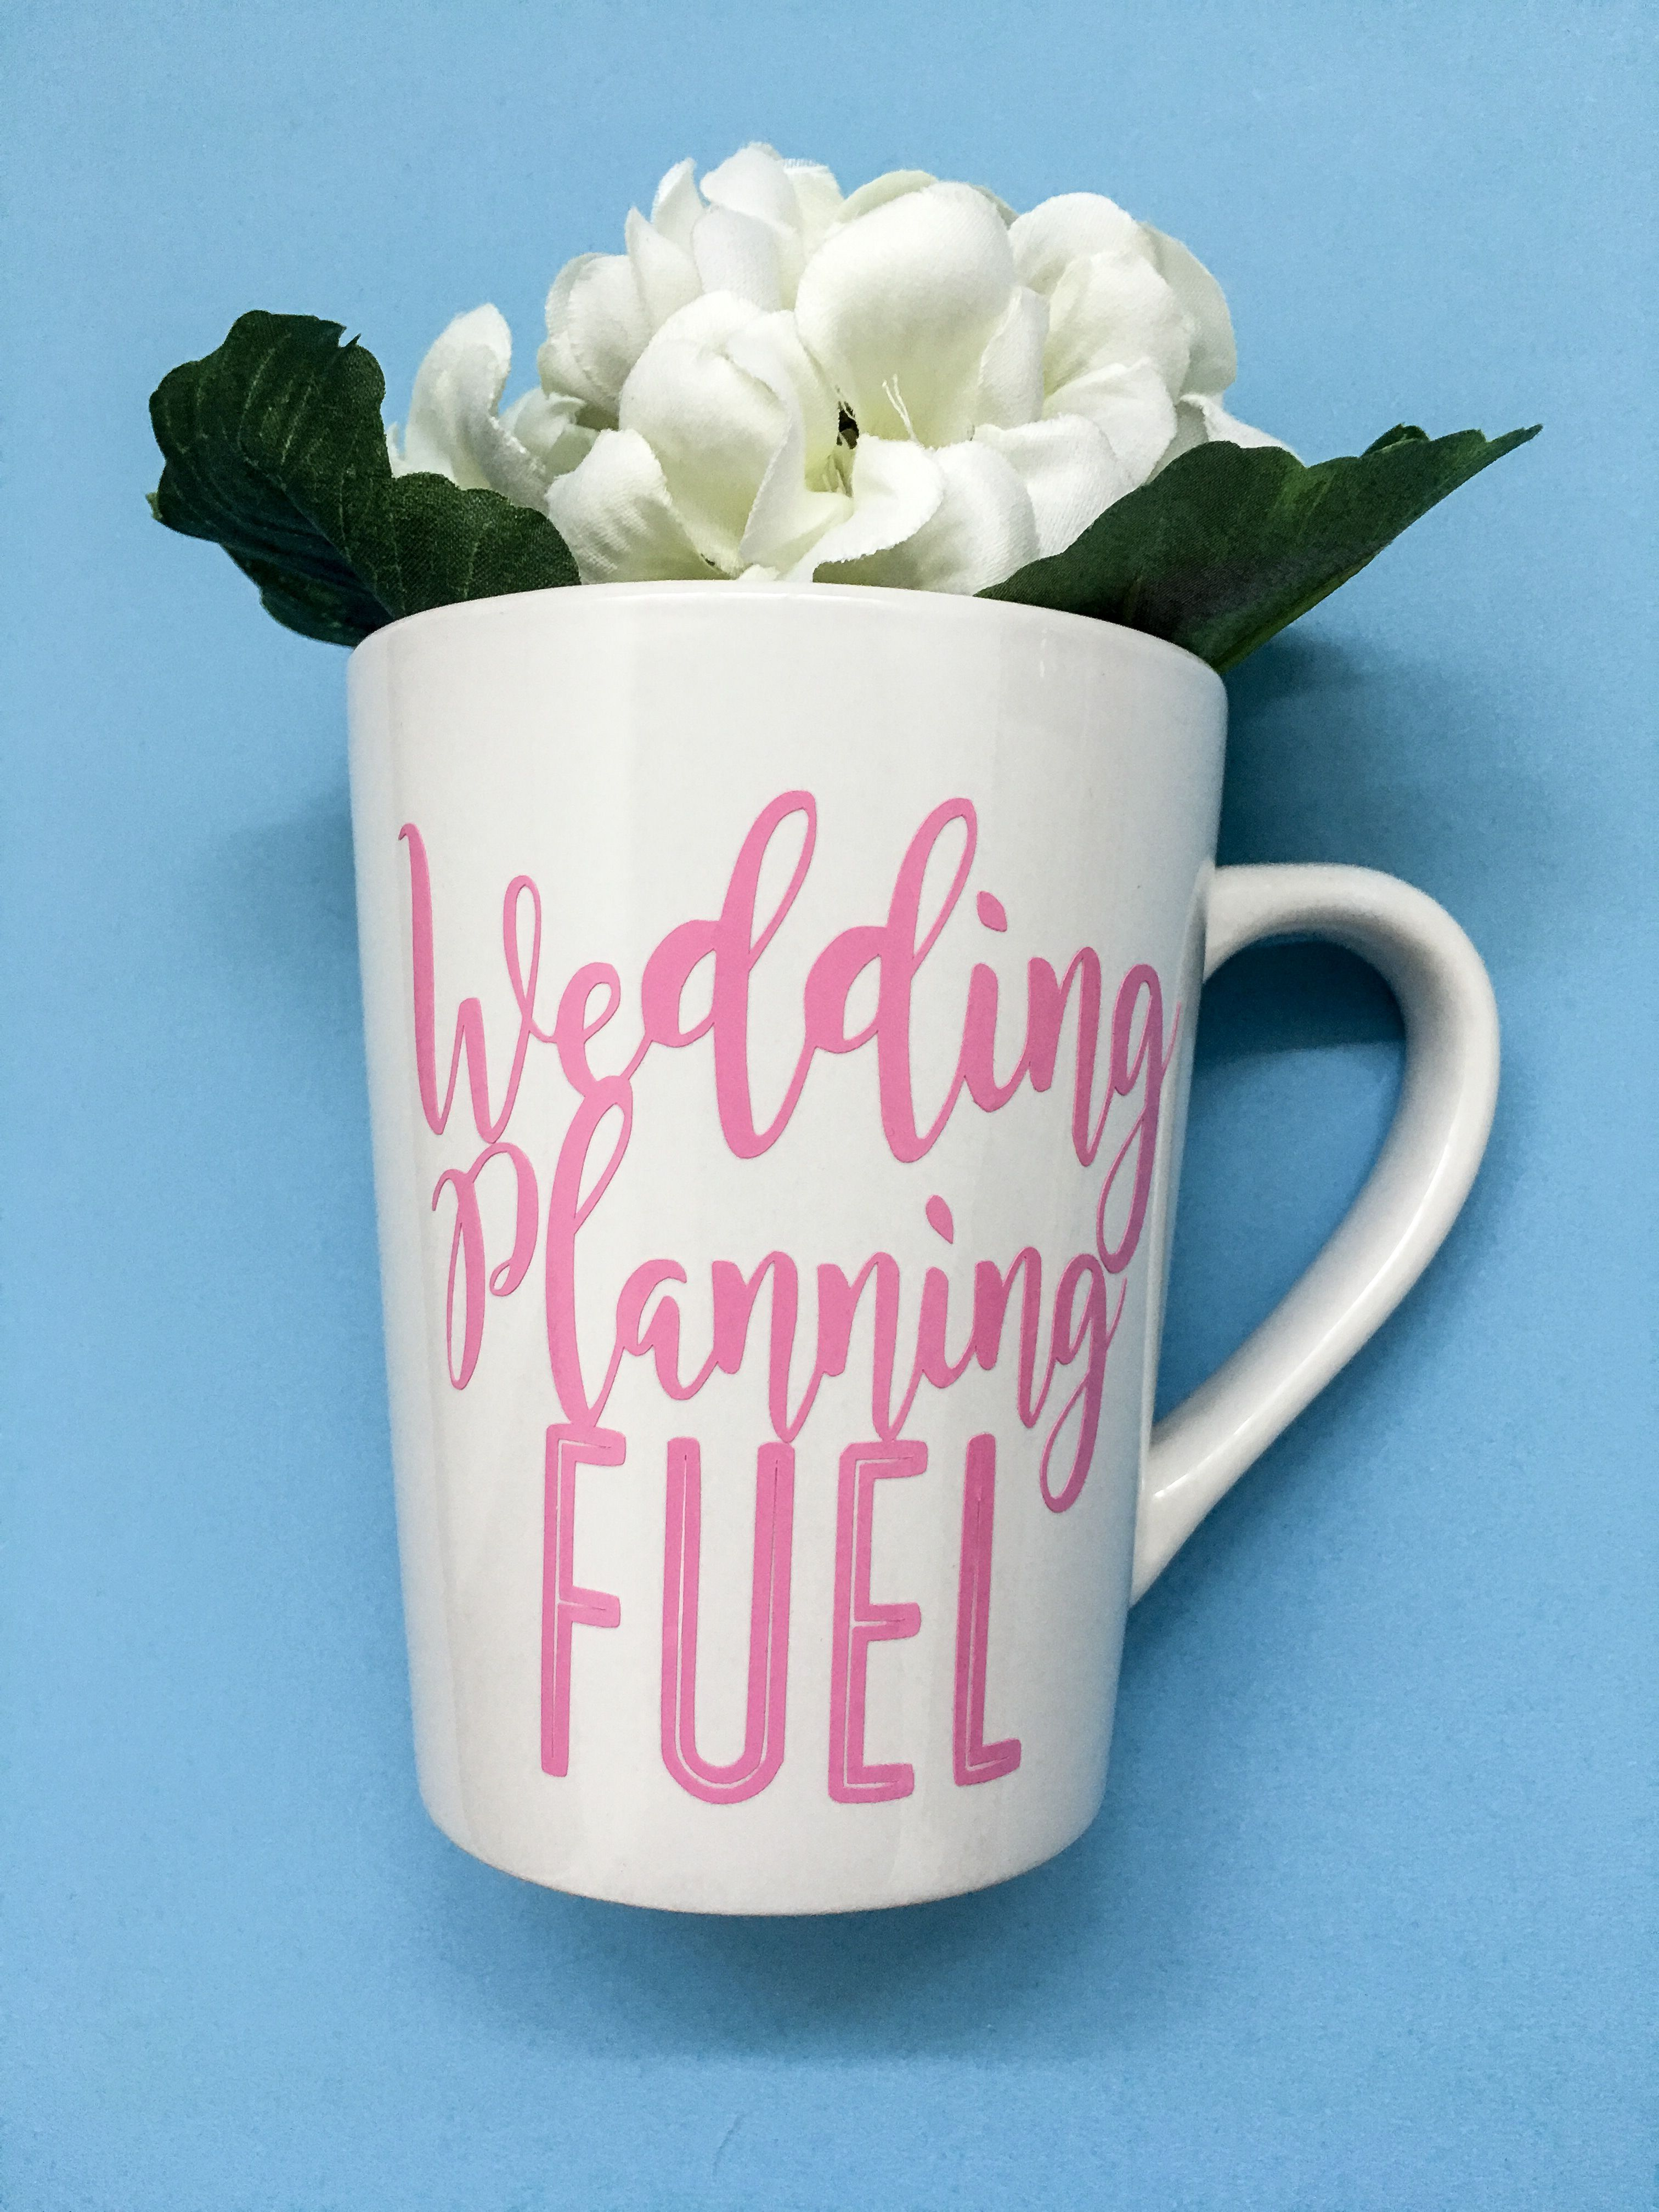 Perfect Gift For A Bride To Be Wedding Planning Fuel Mug Only 1250